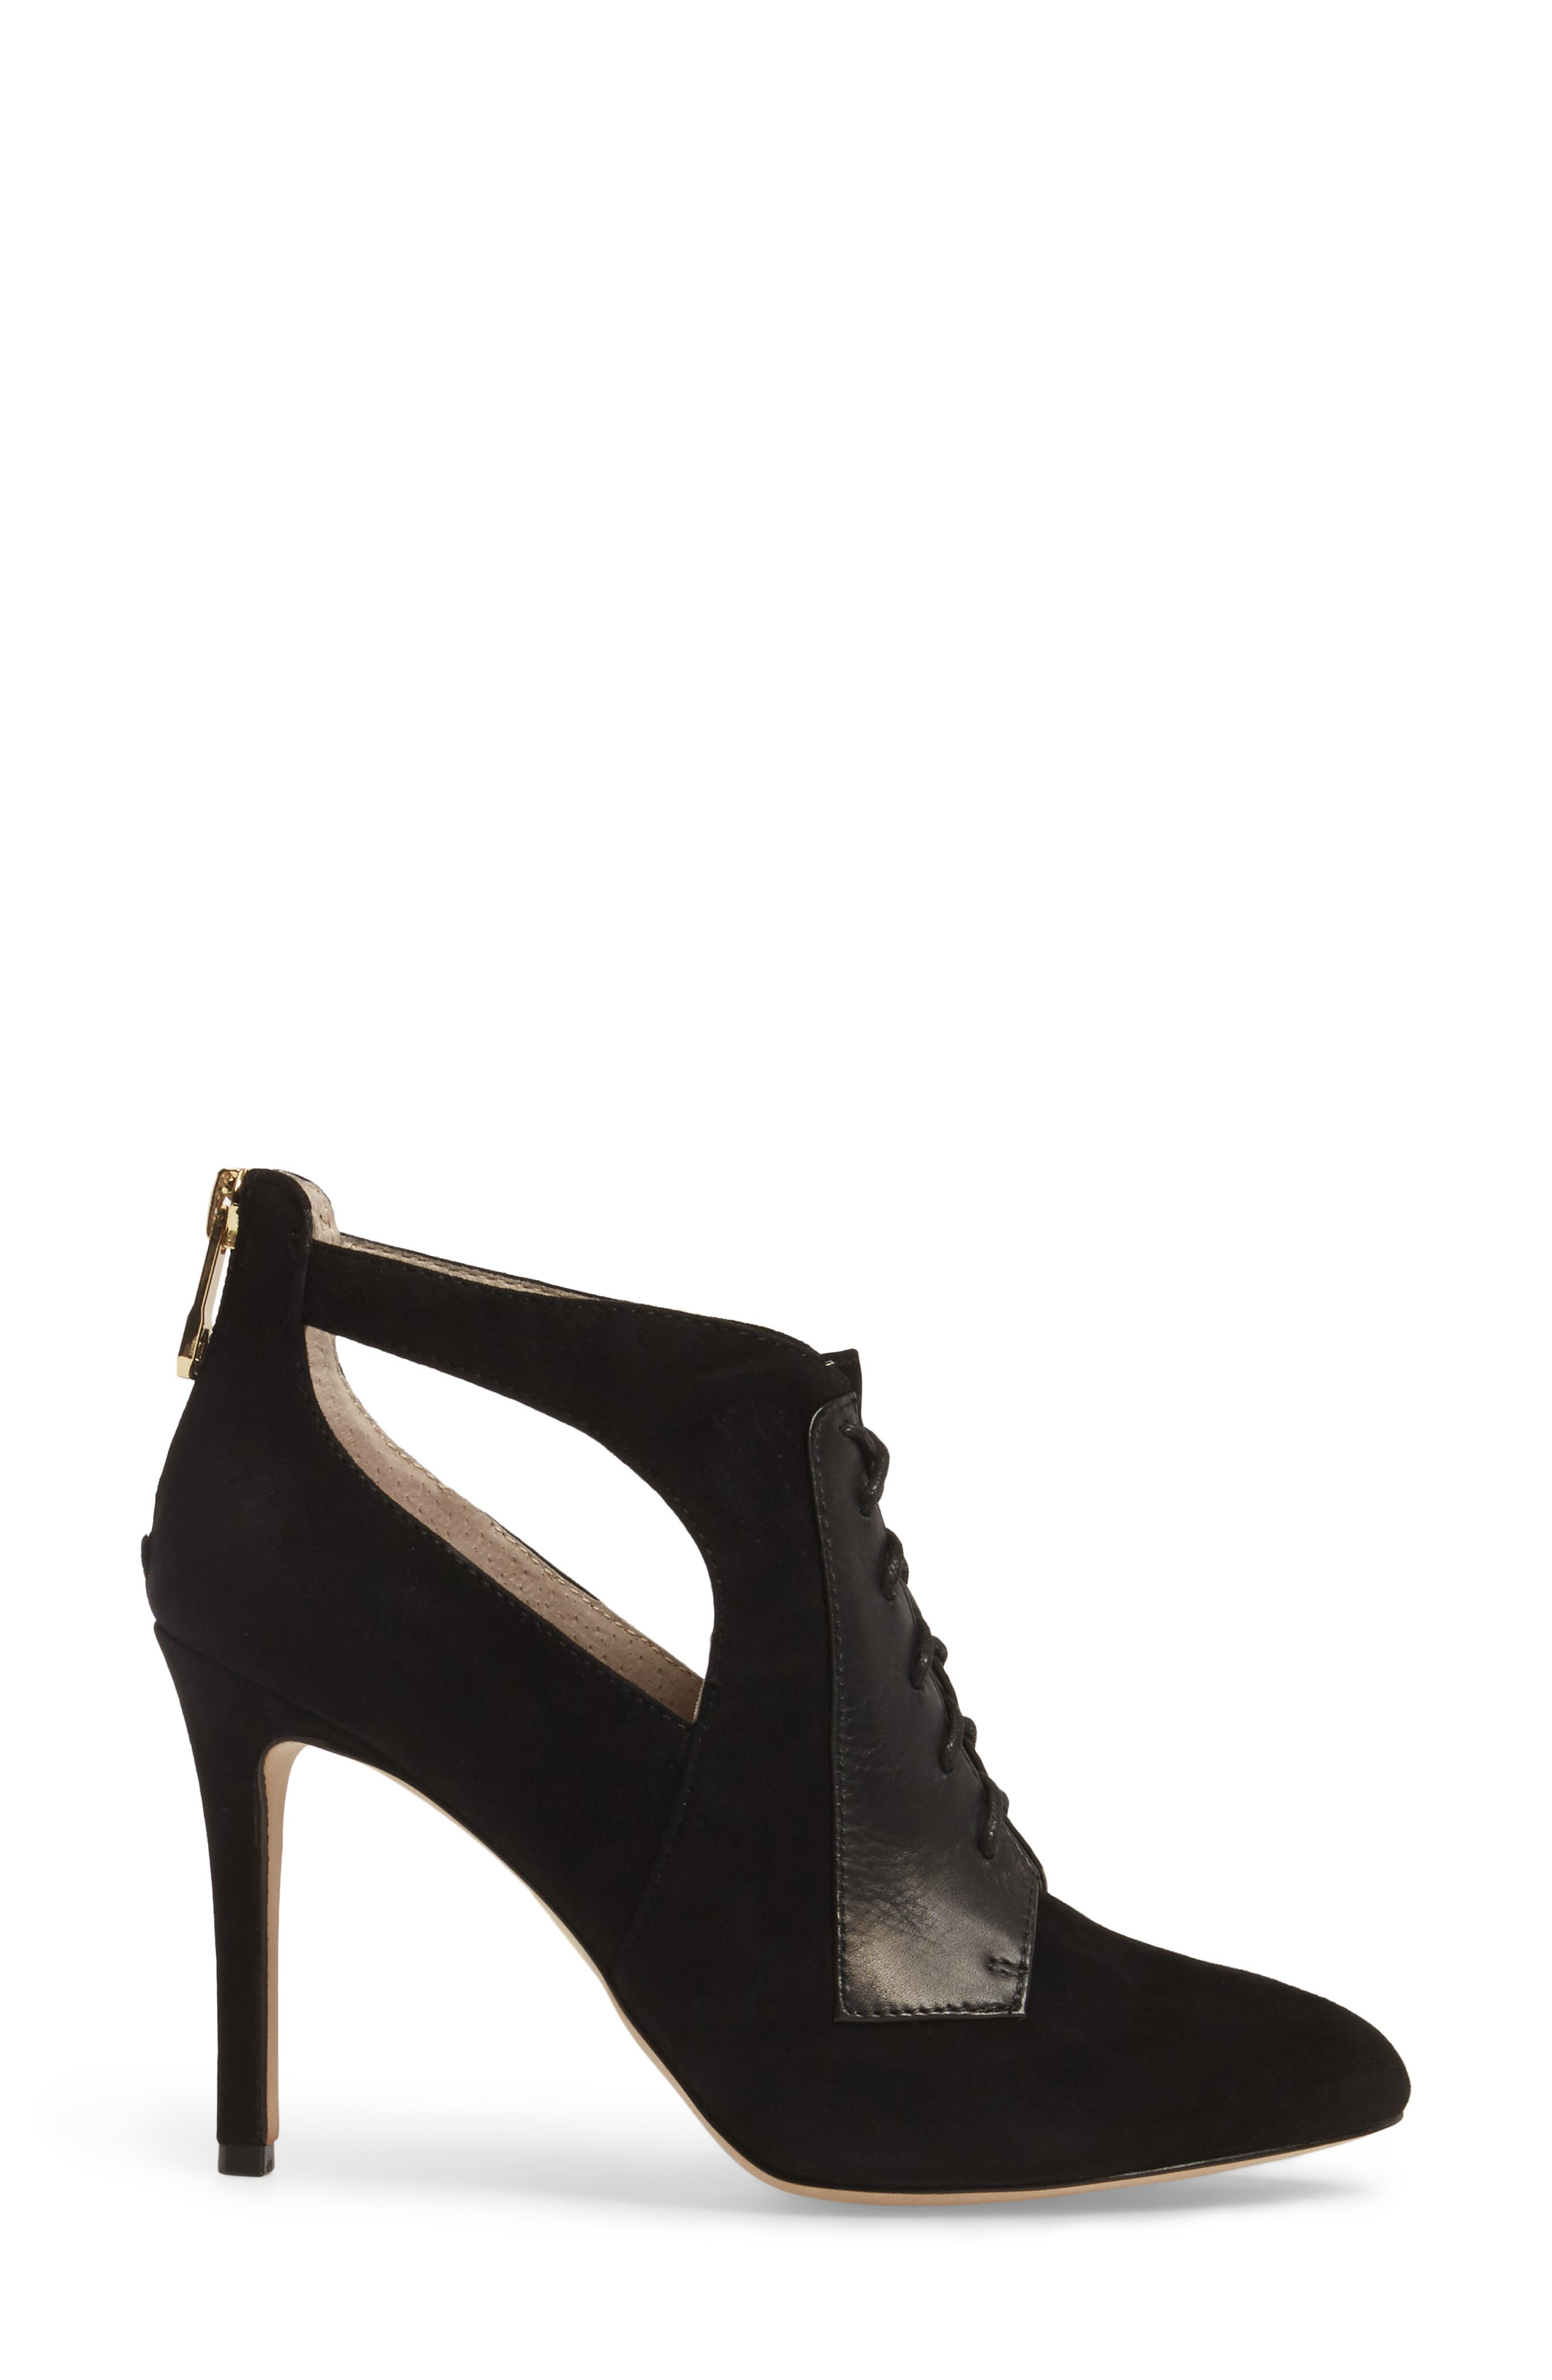 Ionia Lace-Up Pump,                             Alternate thumbnail 3, color,                             001